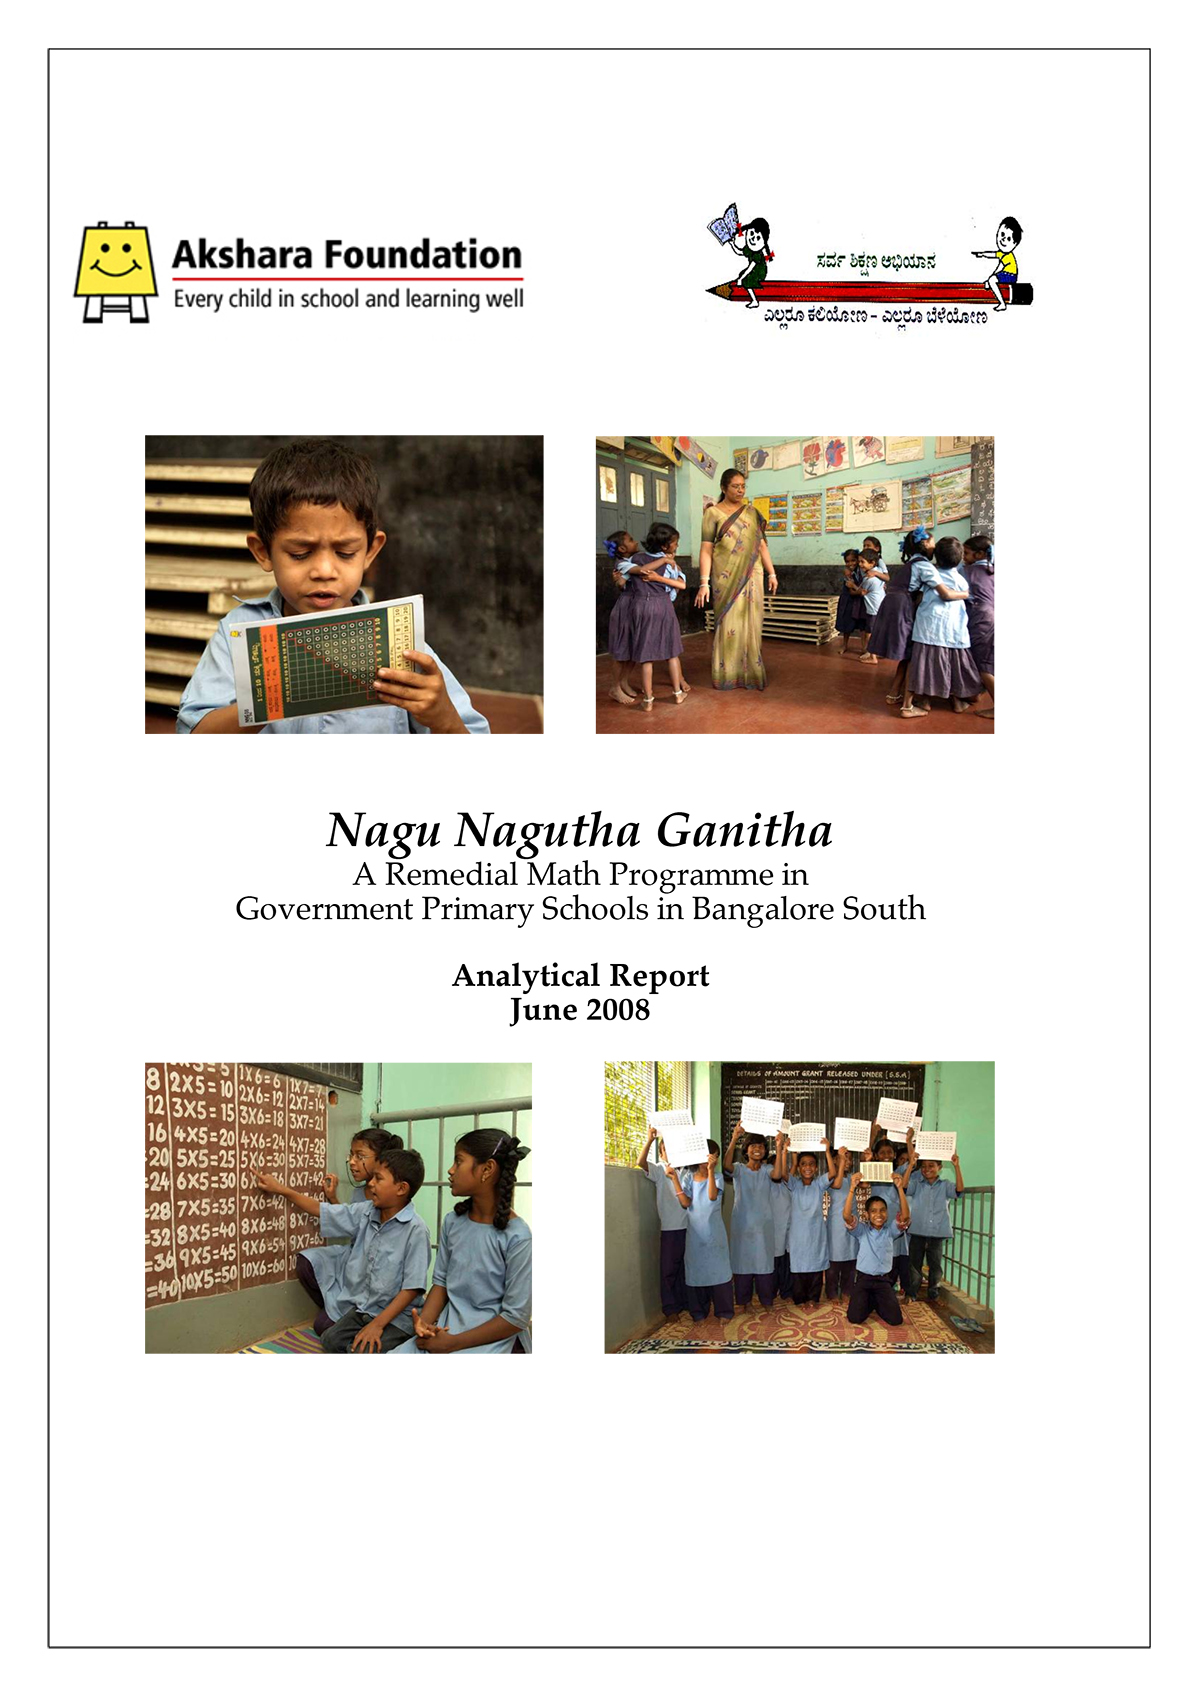 Nagu Nagutha Ganitha - A Remedial Math Programme in Government Primary Schools in Bangalore South Analytical Report, 2008